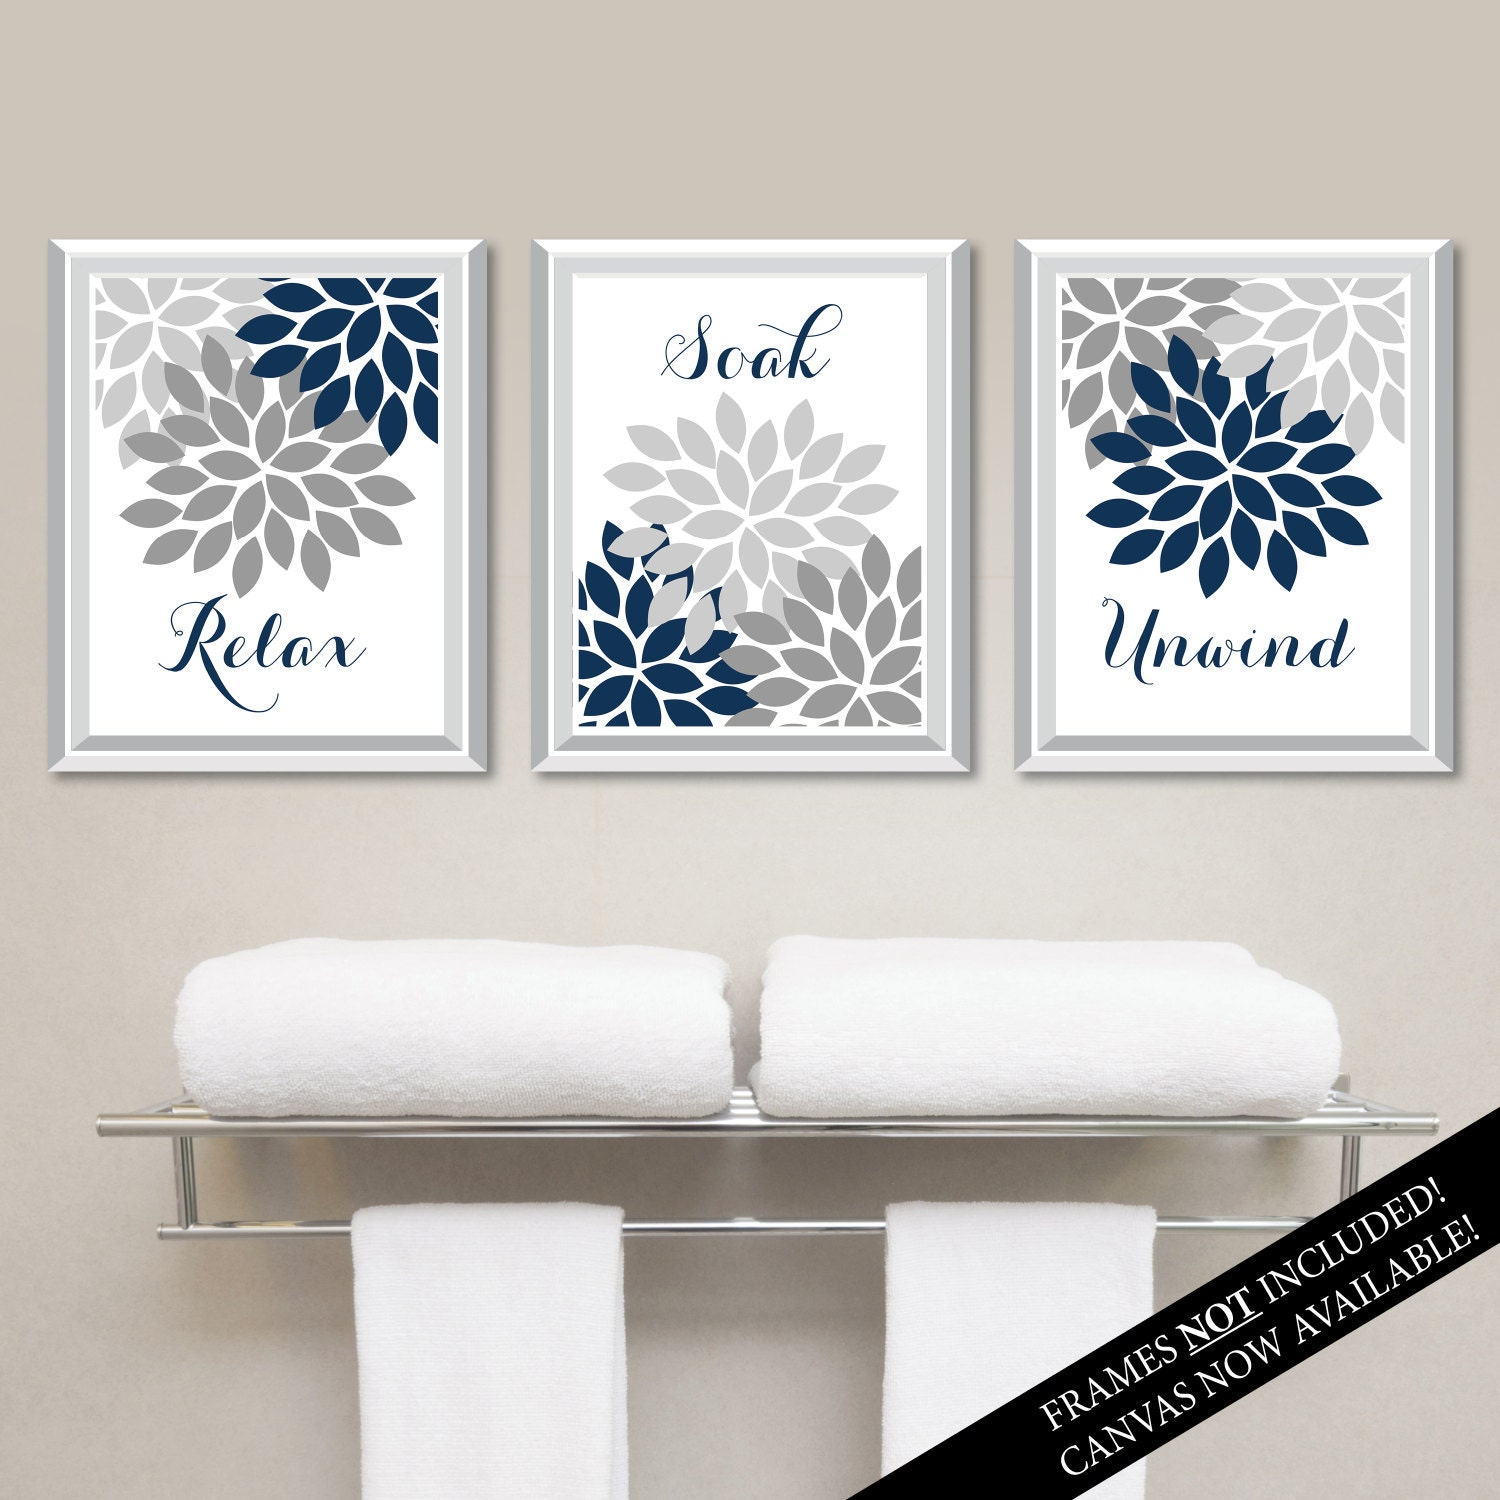 Floral Relax Soak Unwind Print Trio. Bathroom Home Decor ...